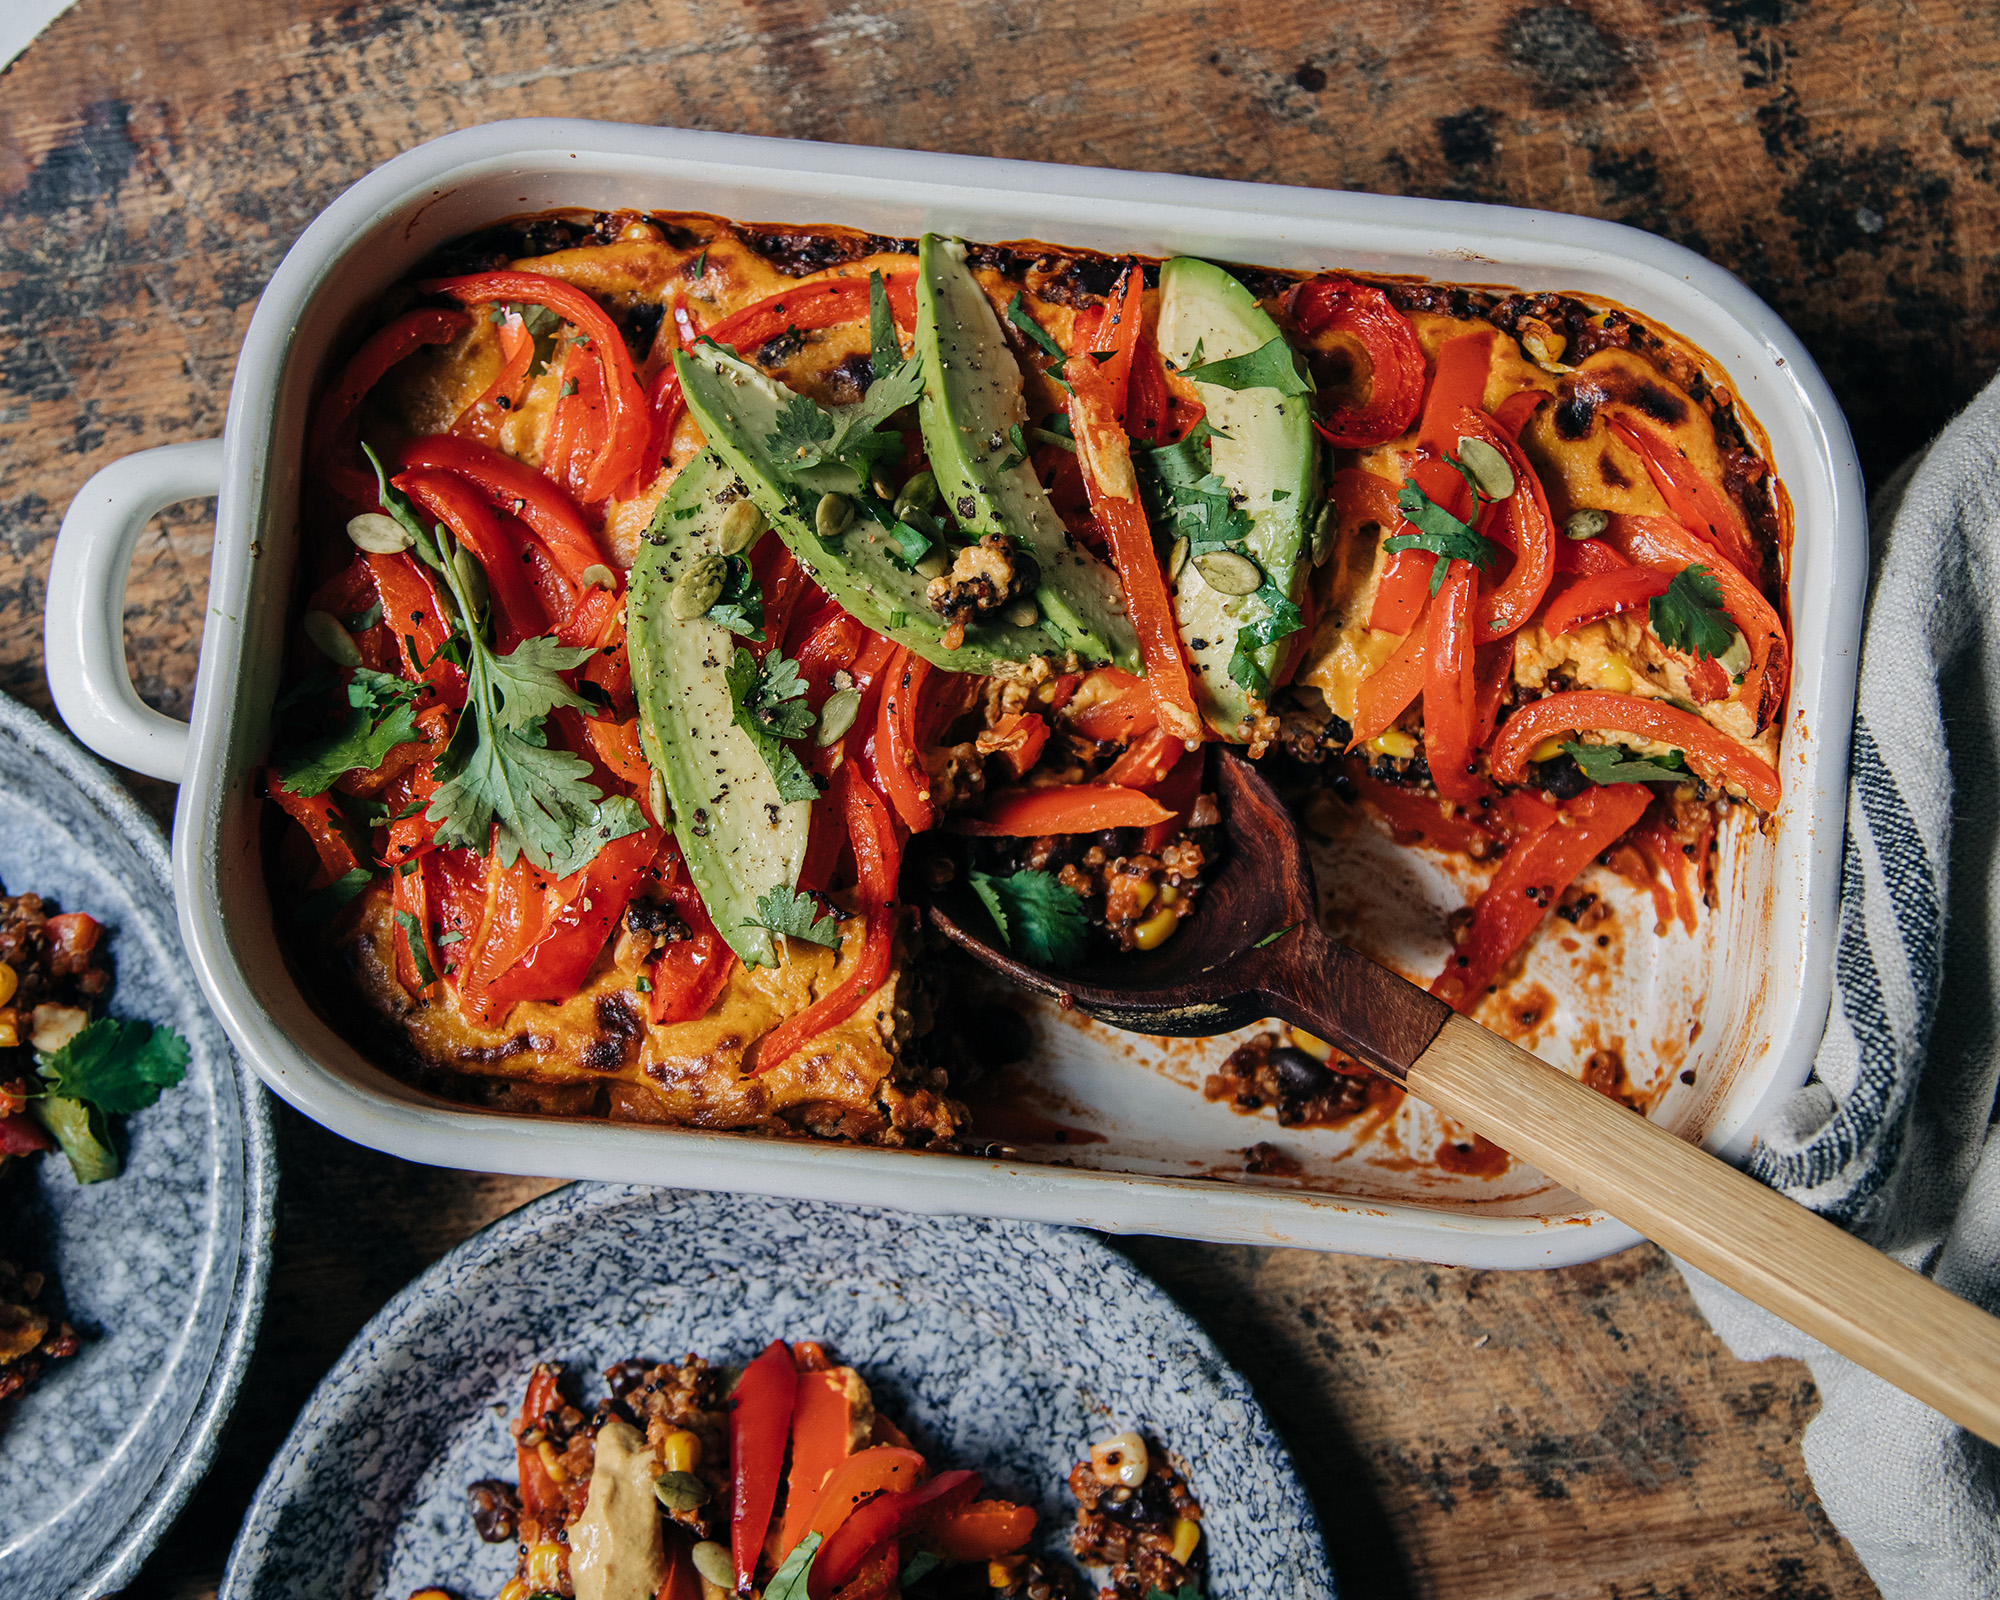 An overhead shot of a vegan casserole topped with sautéed bell peppers, avocado, and chopped cilantro. The casserole dish is white and perched on top of a worn wood surface.